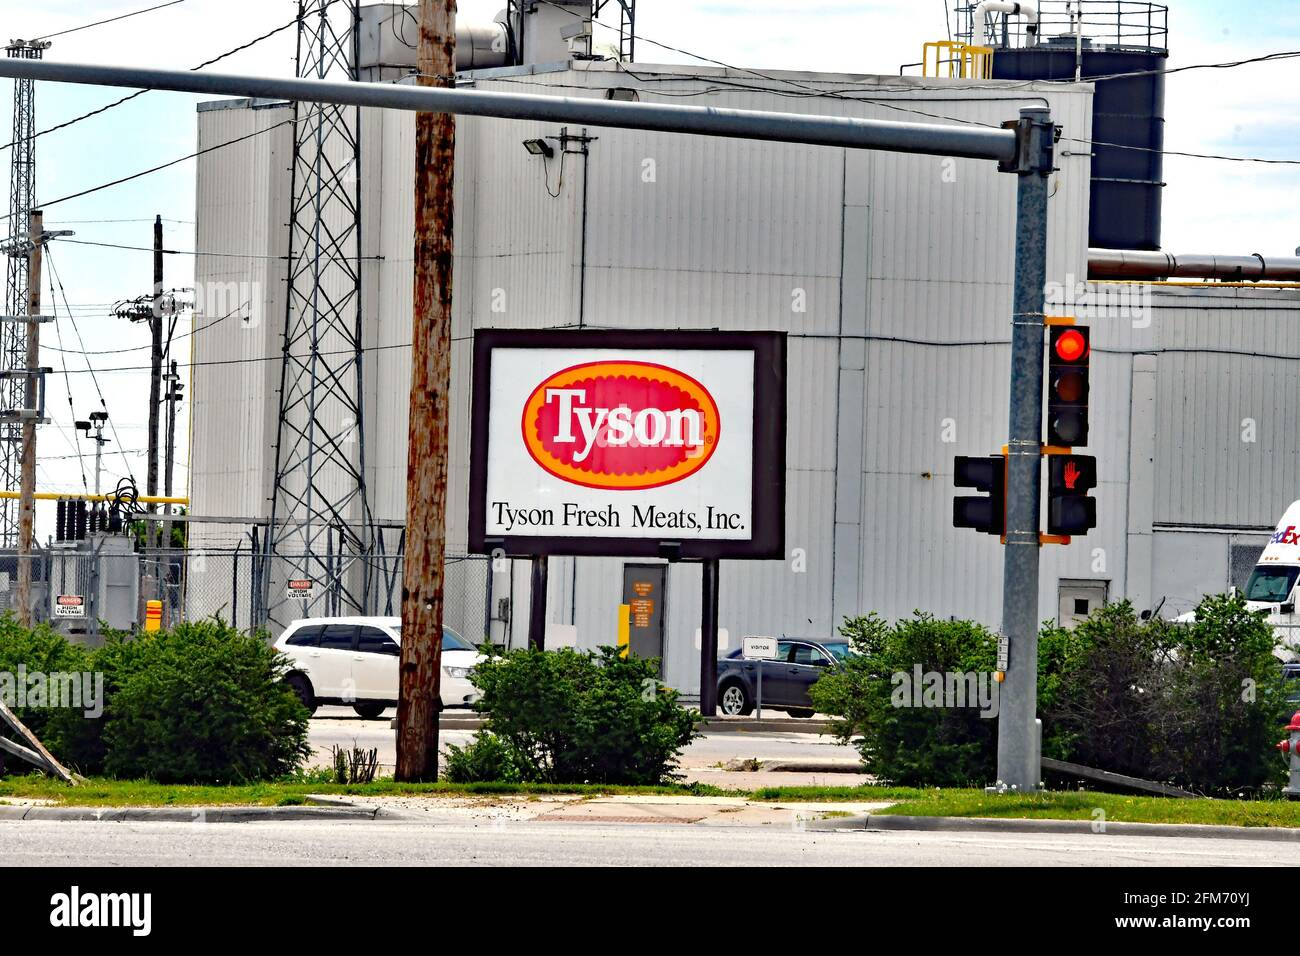 Emporia, KS, USA. 6th May, 2021. View of a Tyson fresh meats plant in Emporia Kansas, MAY 6, 2021. Credit: Mark Reinstein/Media Punch/Alamy Live News Stock Photo